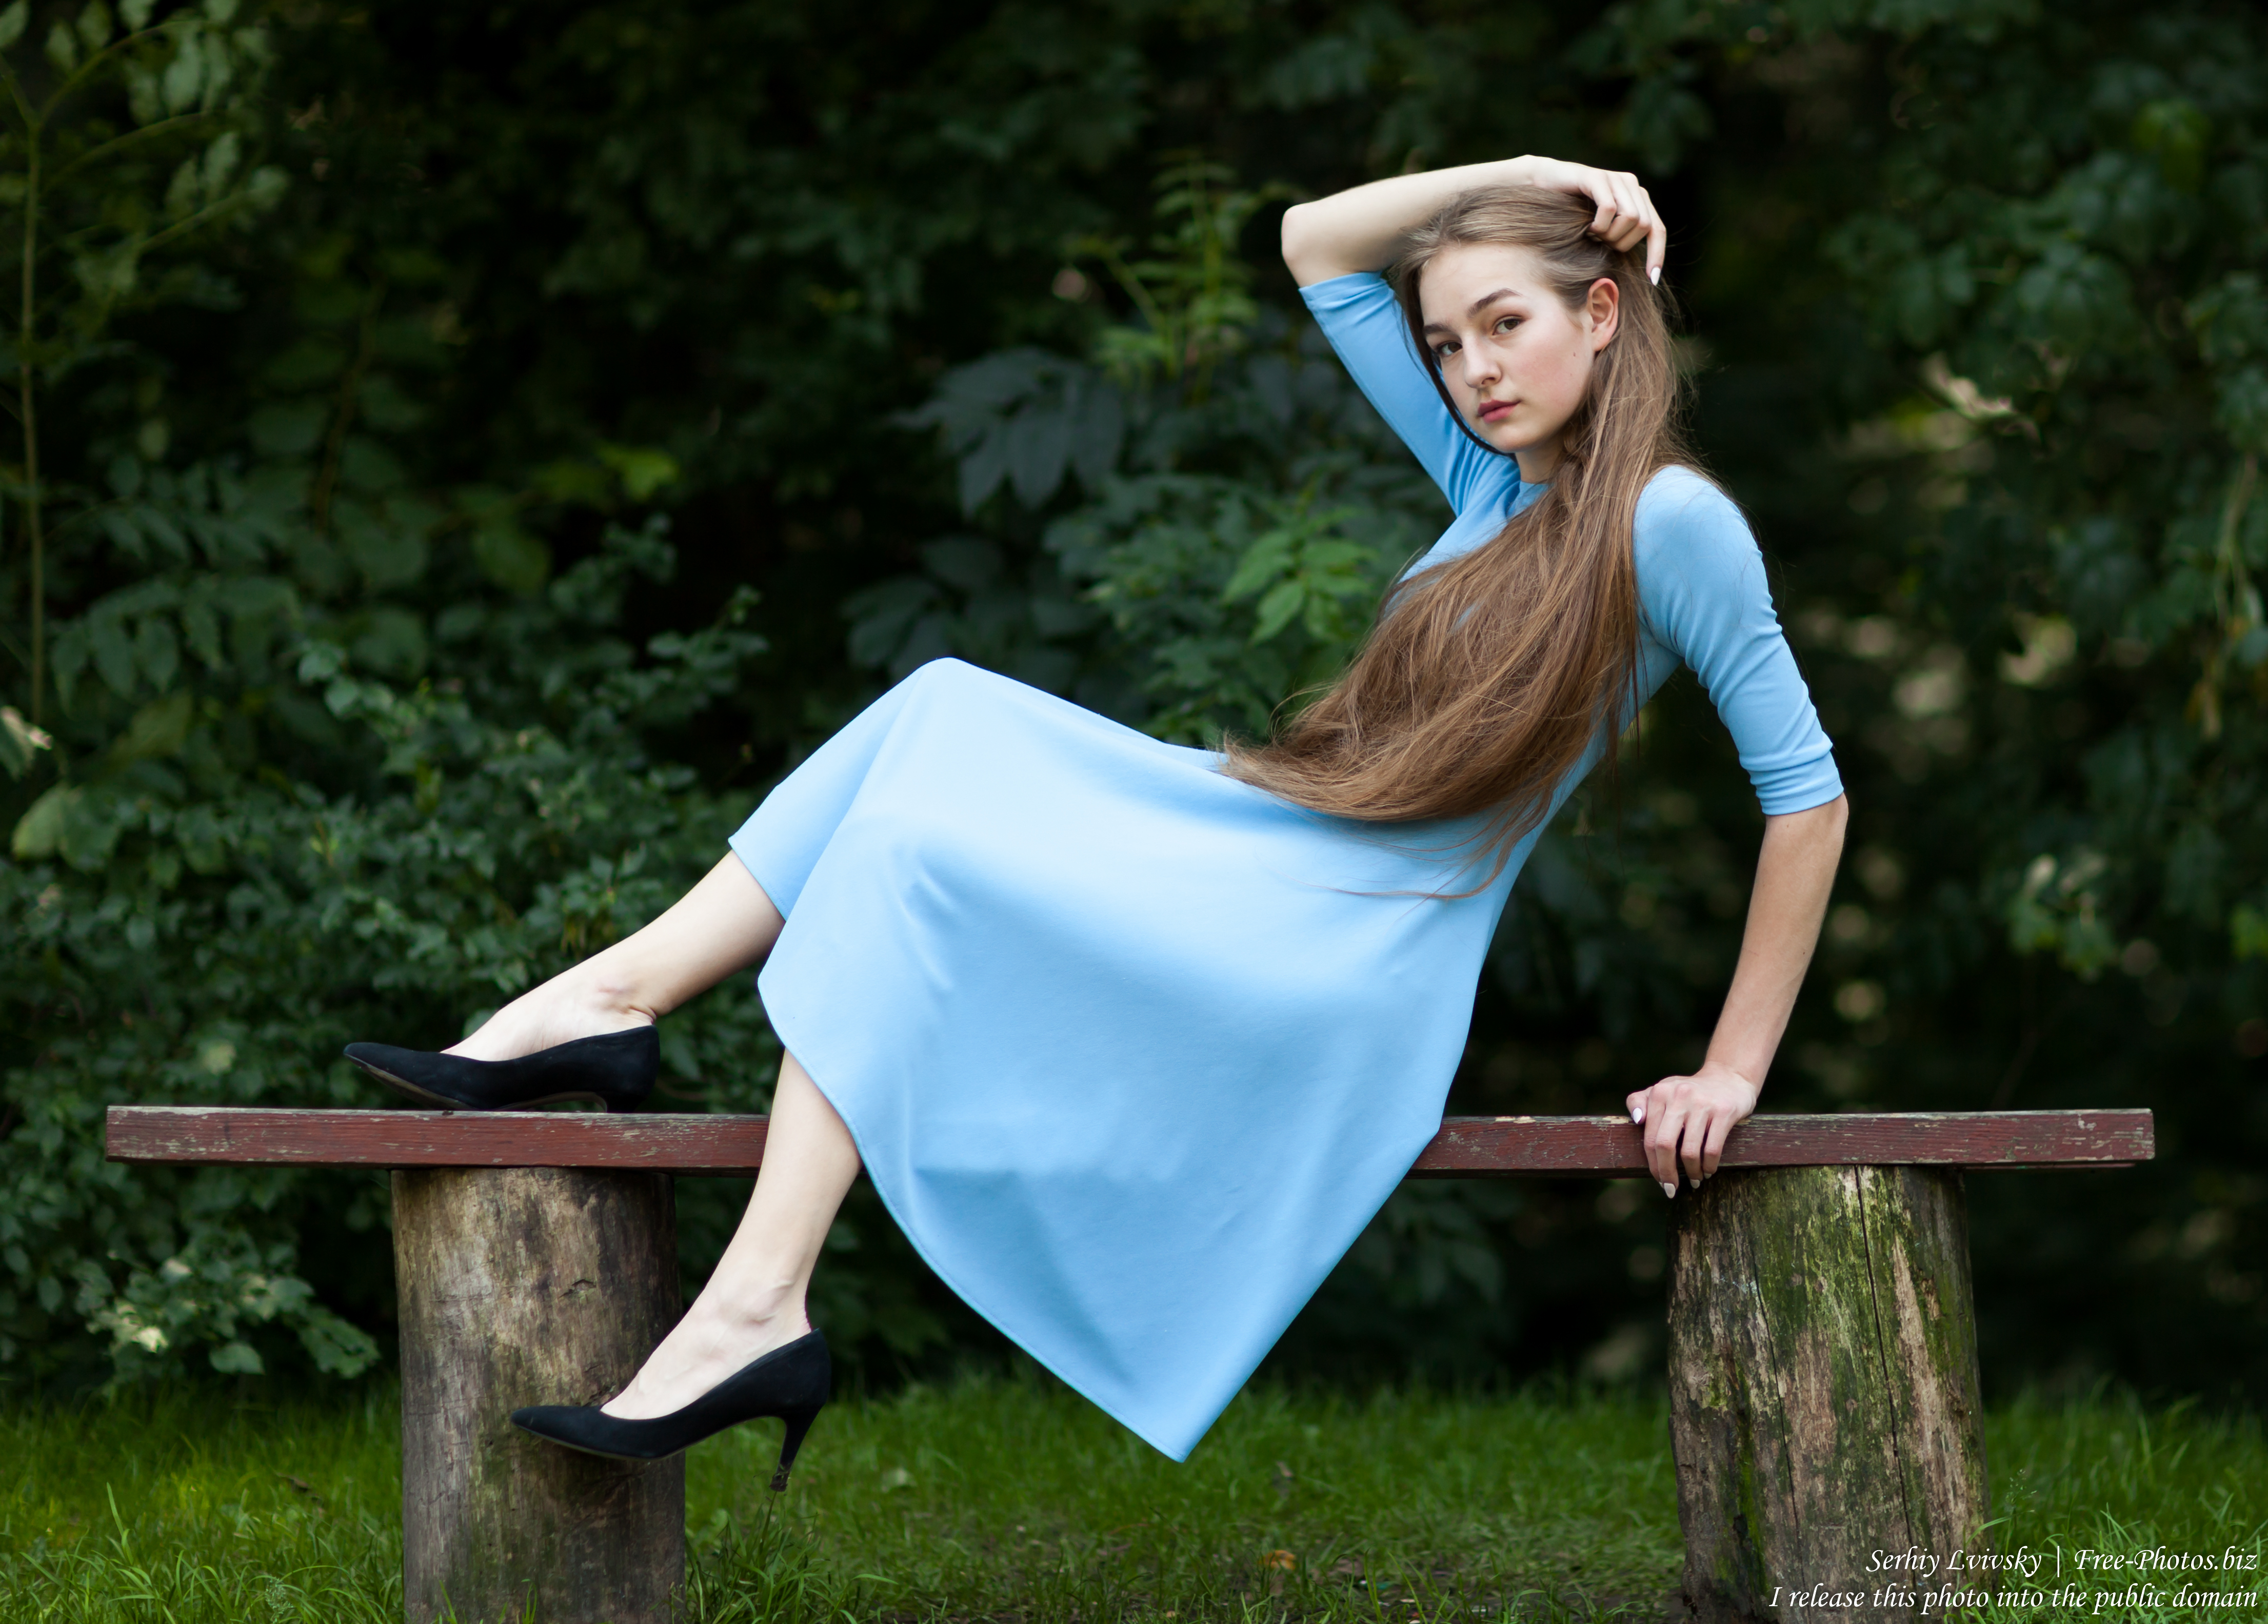 Justyna - a 16-year-old fair-haired girl photographed in June 2018 by Serhiy Lvivsky, picture 12